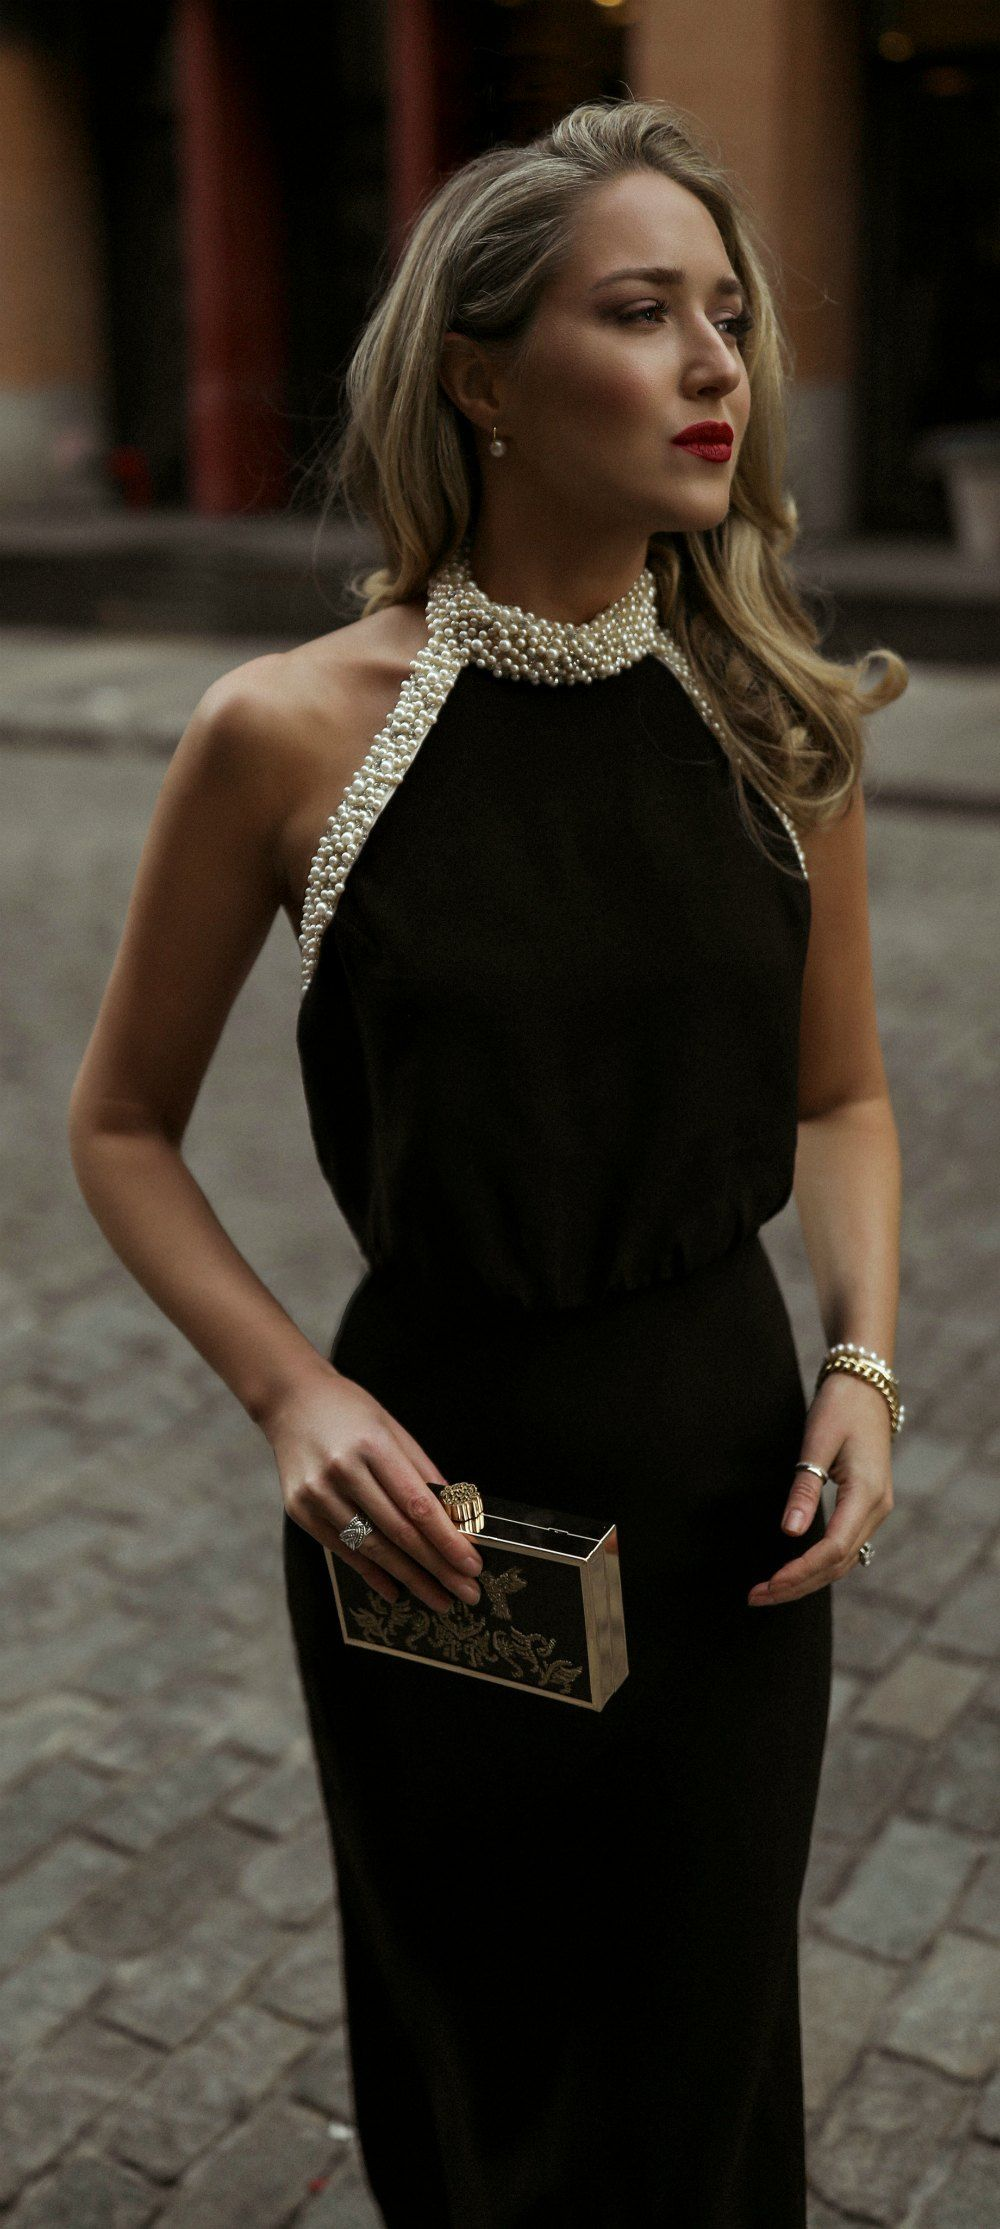 Day 17 Corporate Charity Black Backless Gown With A Glamorous Pearl Encrusted Halter Neck Black Gold Clutch Pu Black Dress Gold And Black Dress Fashion [ 2229 x 1000 Pixel ]